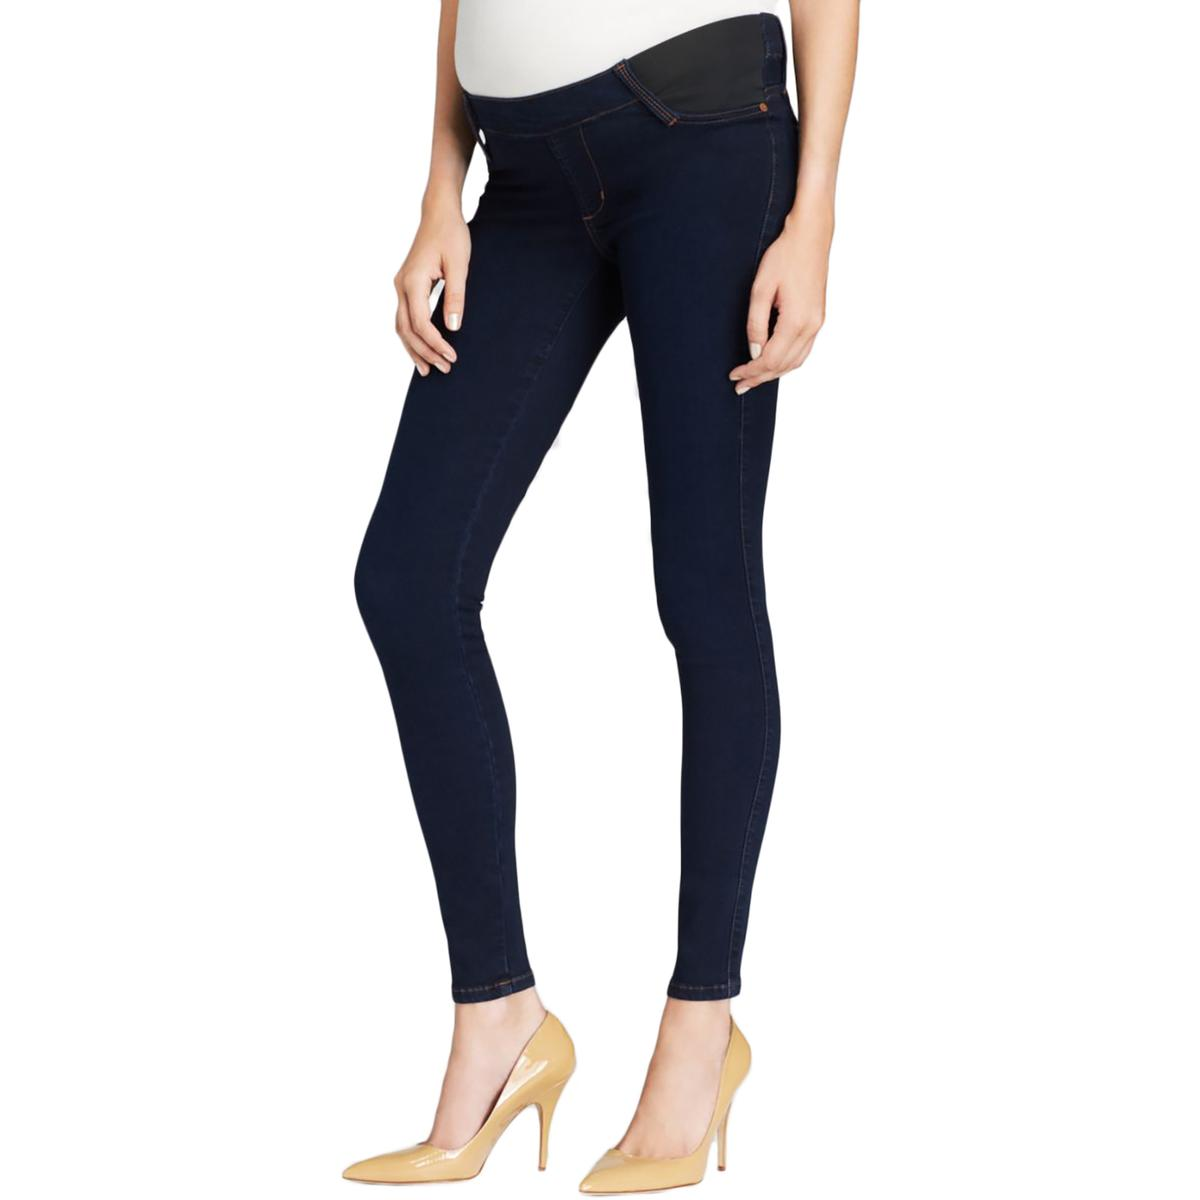 James Jeans Womens Legging Stretch Skinny Jeans